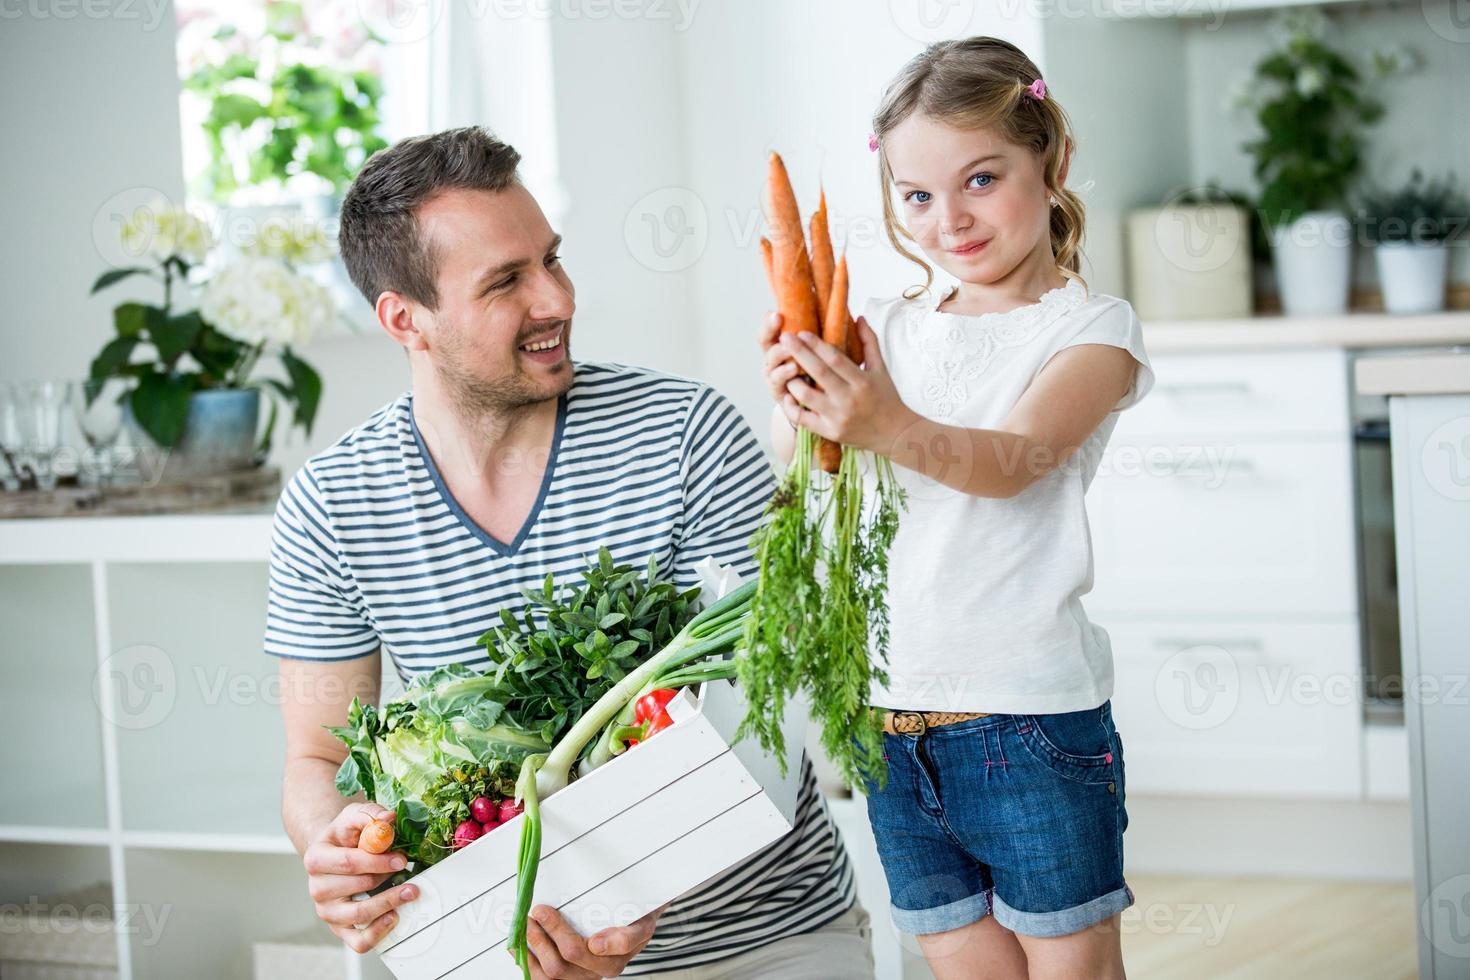 Father and daughter with vegetable box in kitchen photo